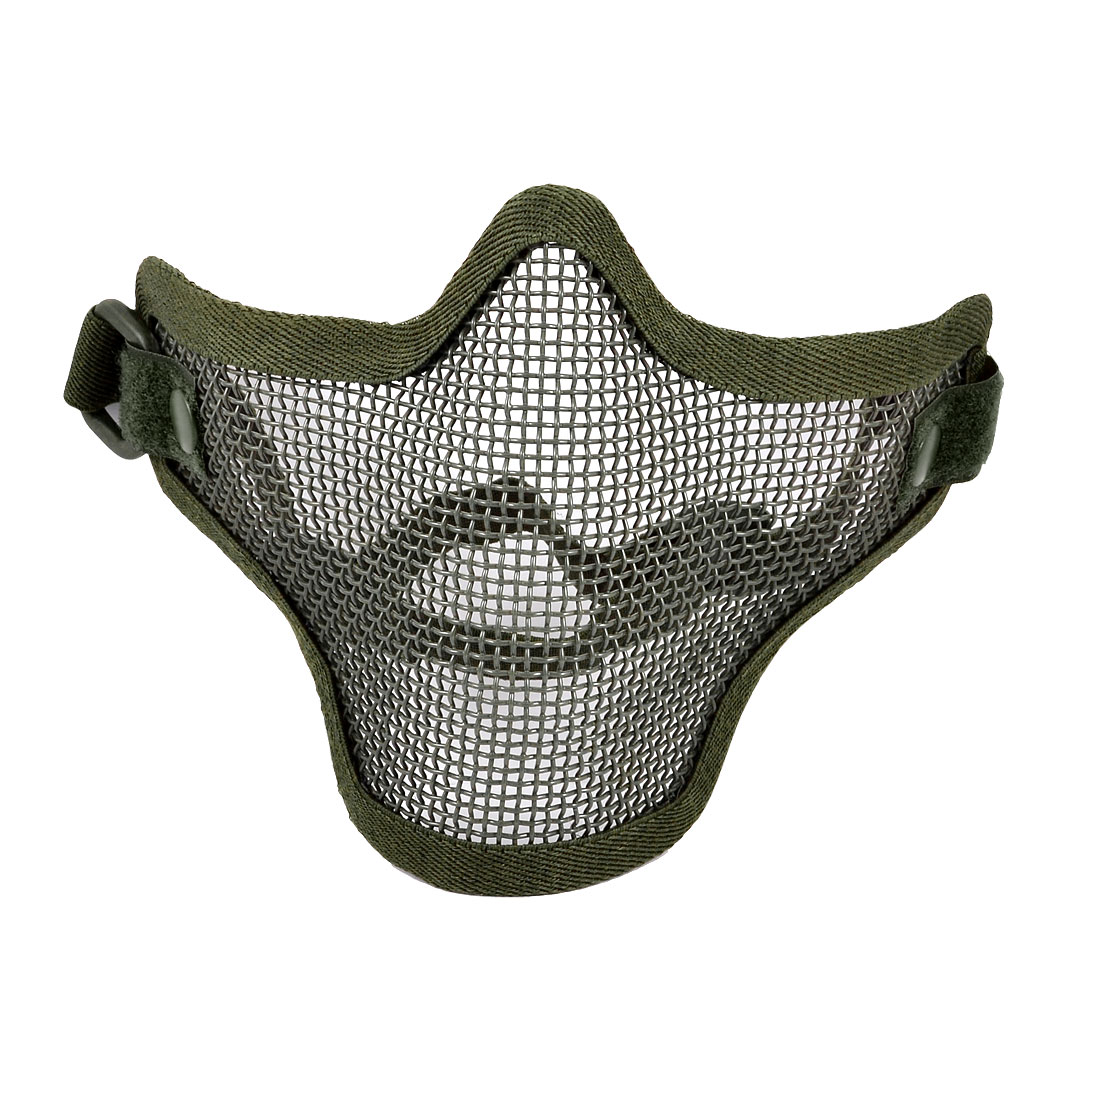 Airsoft War Game Half Face Guard Mesh Mask Protector Olive Green